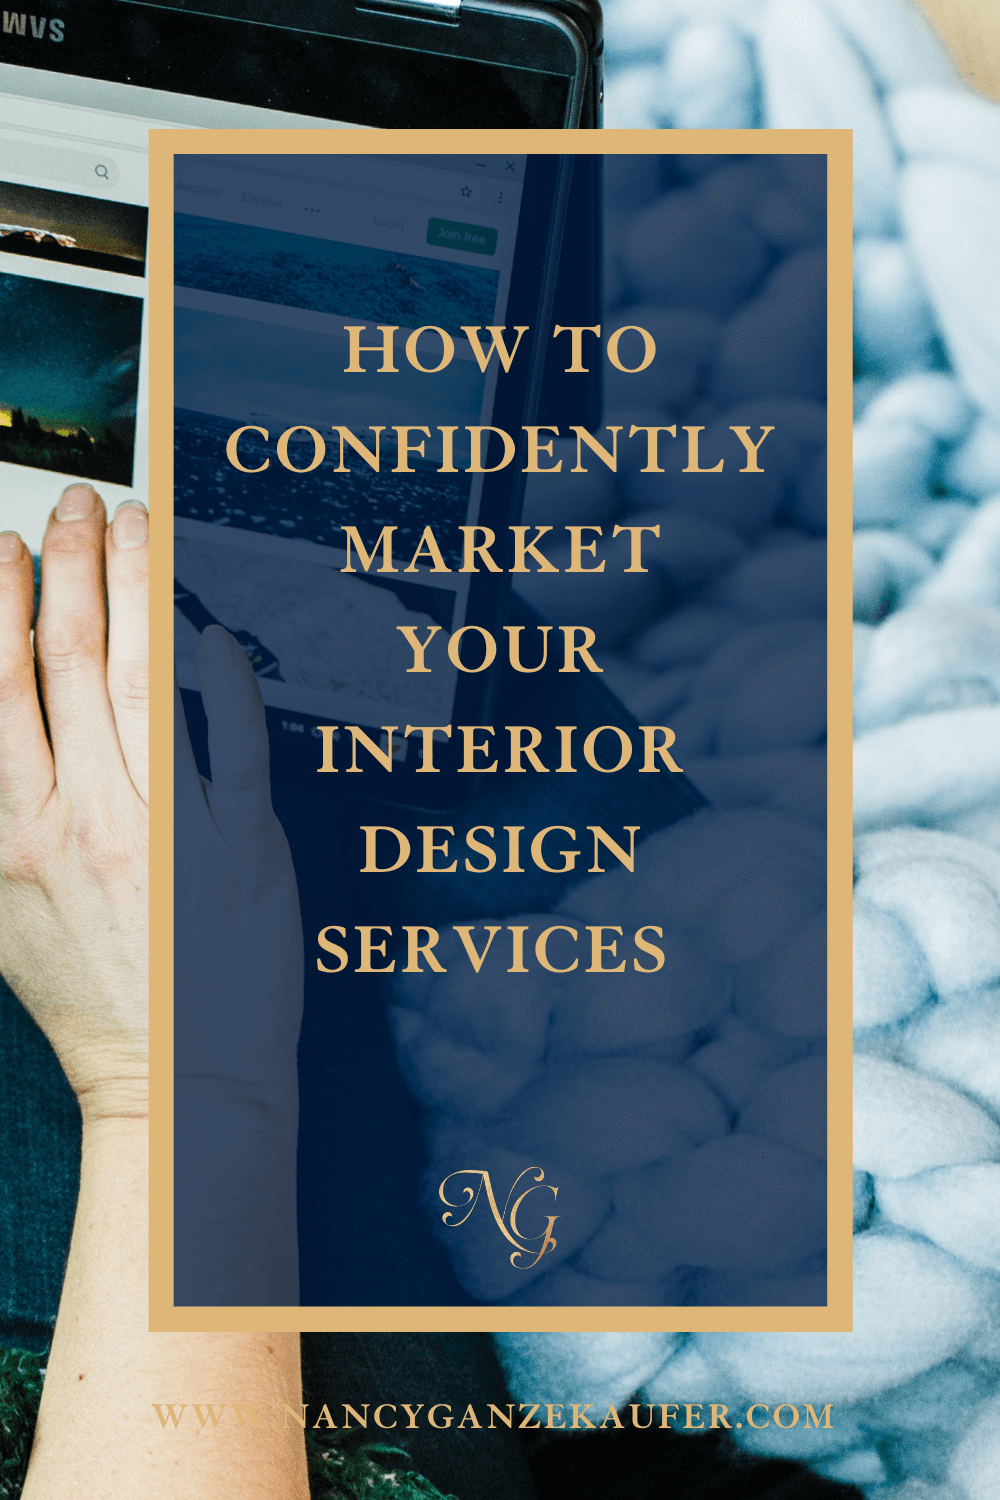 How to confidently market your interior design services.